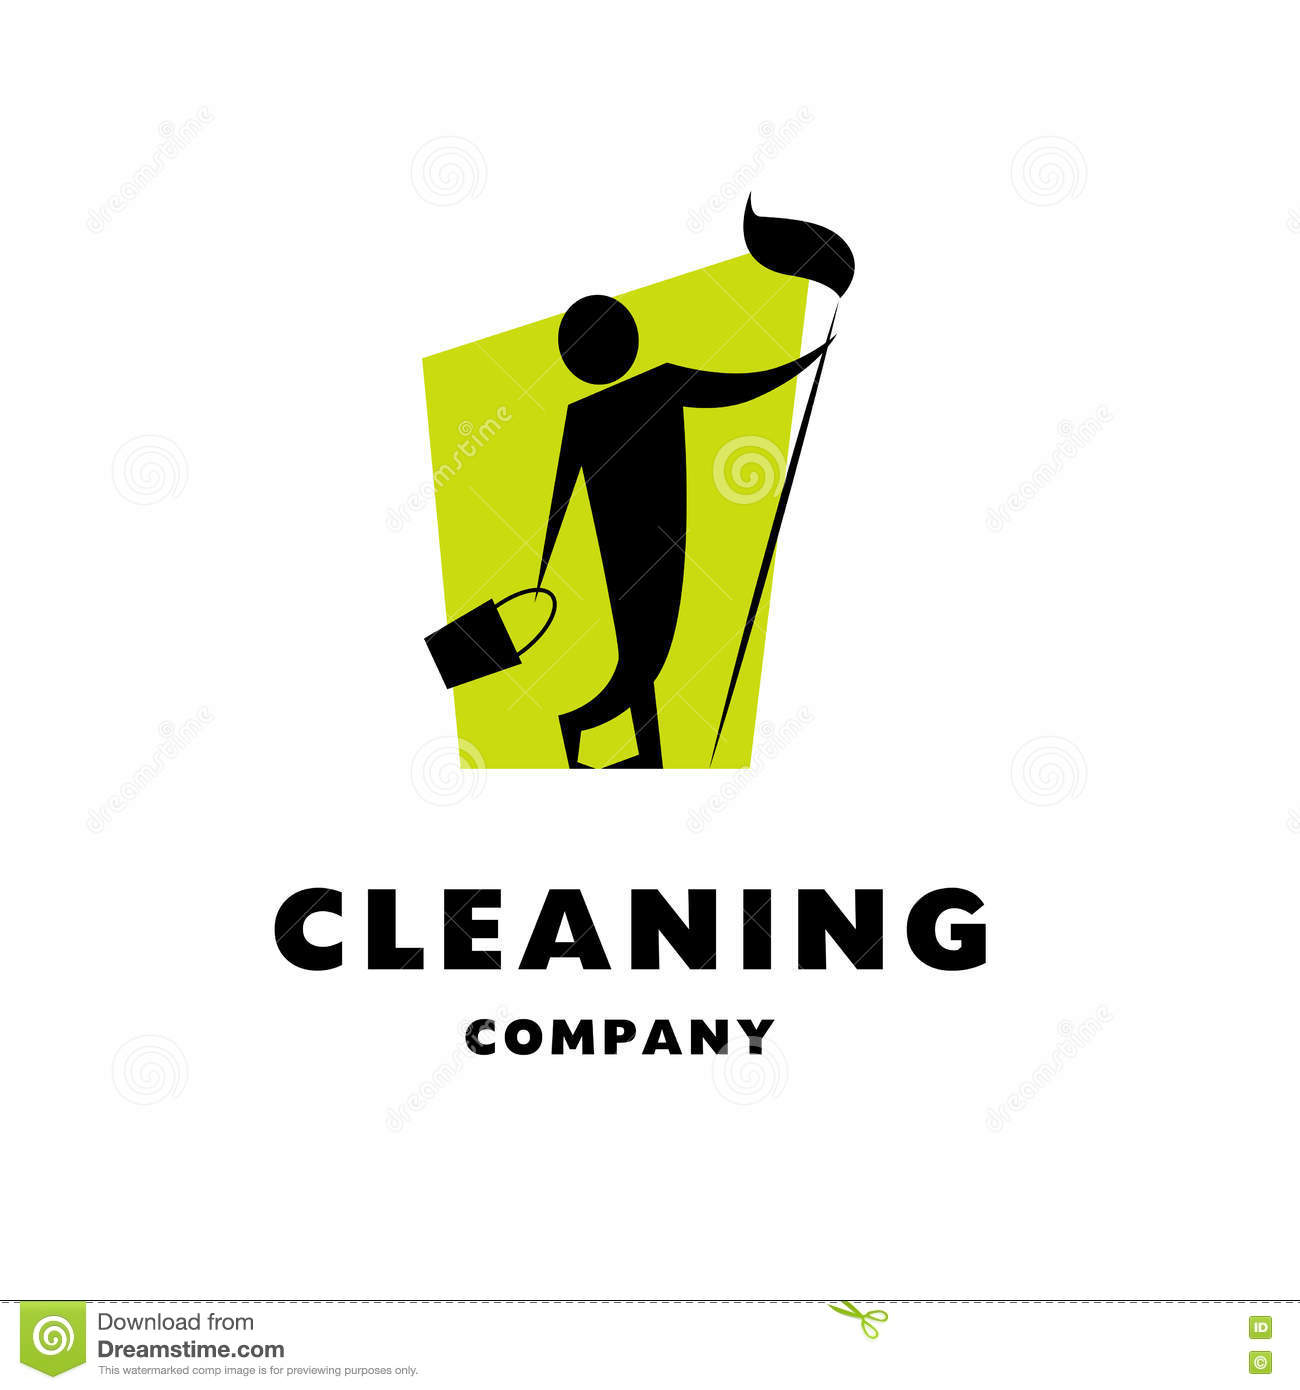 Vector logo for cleaning company.